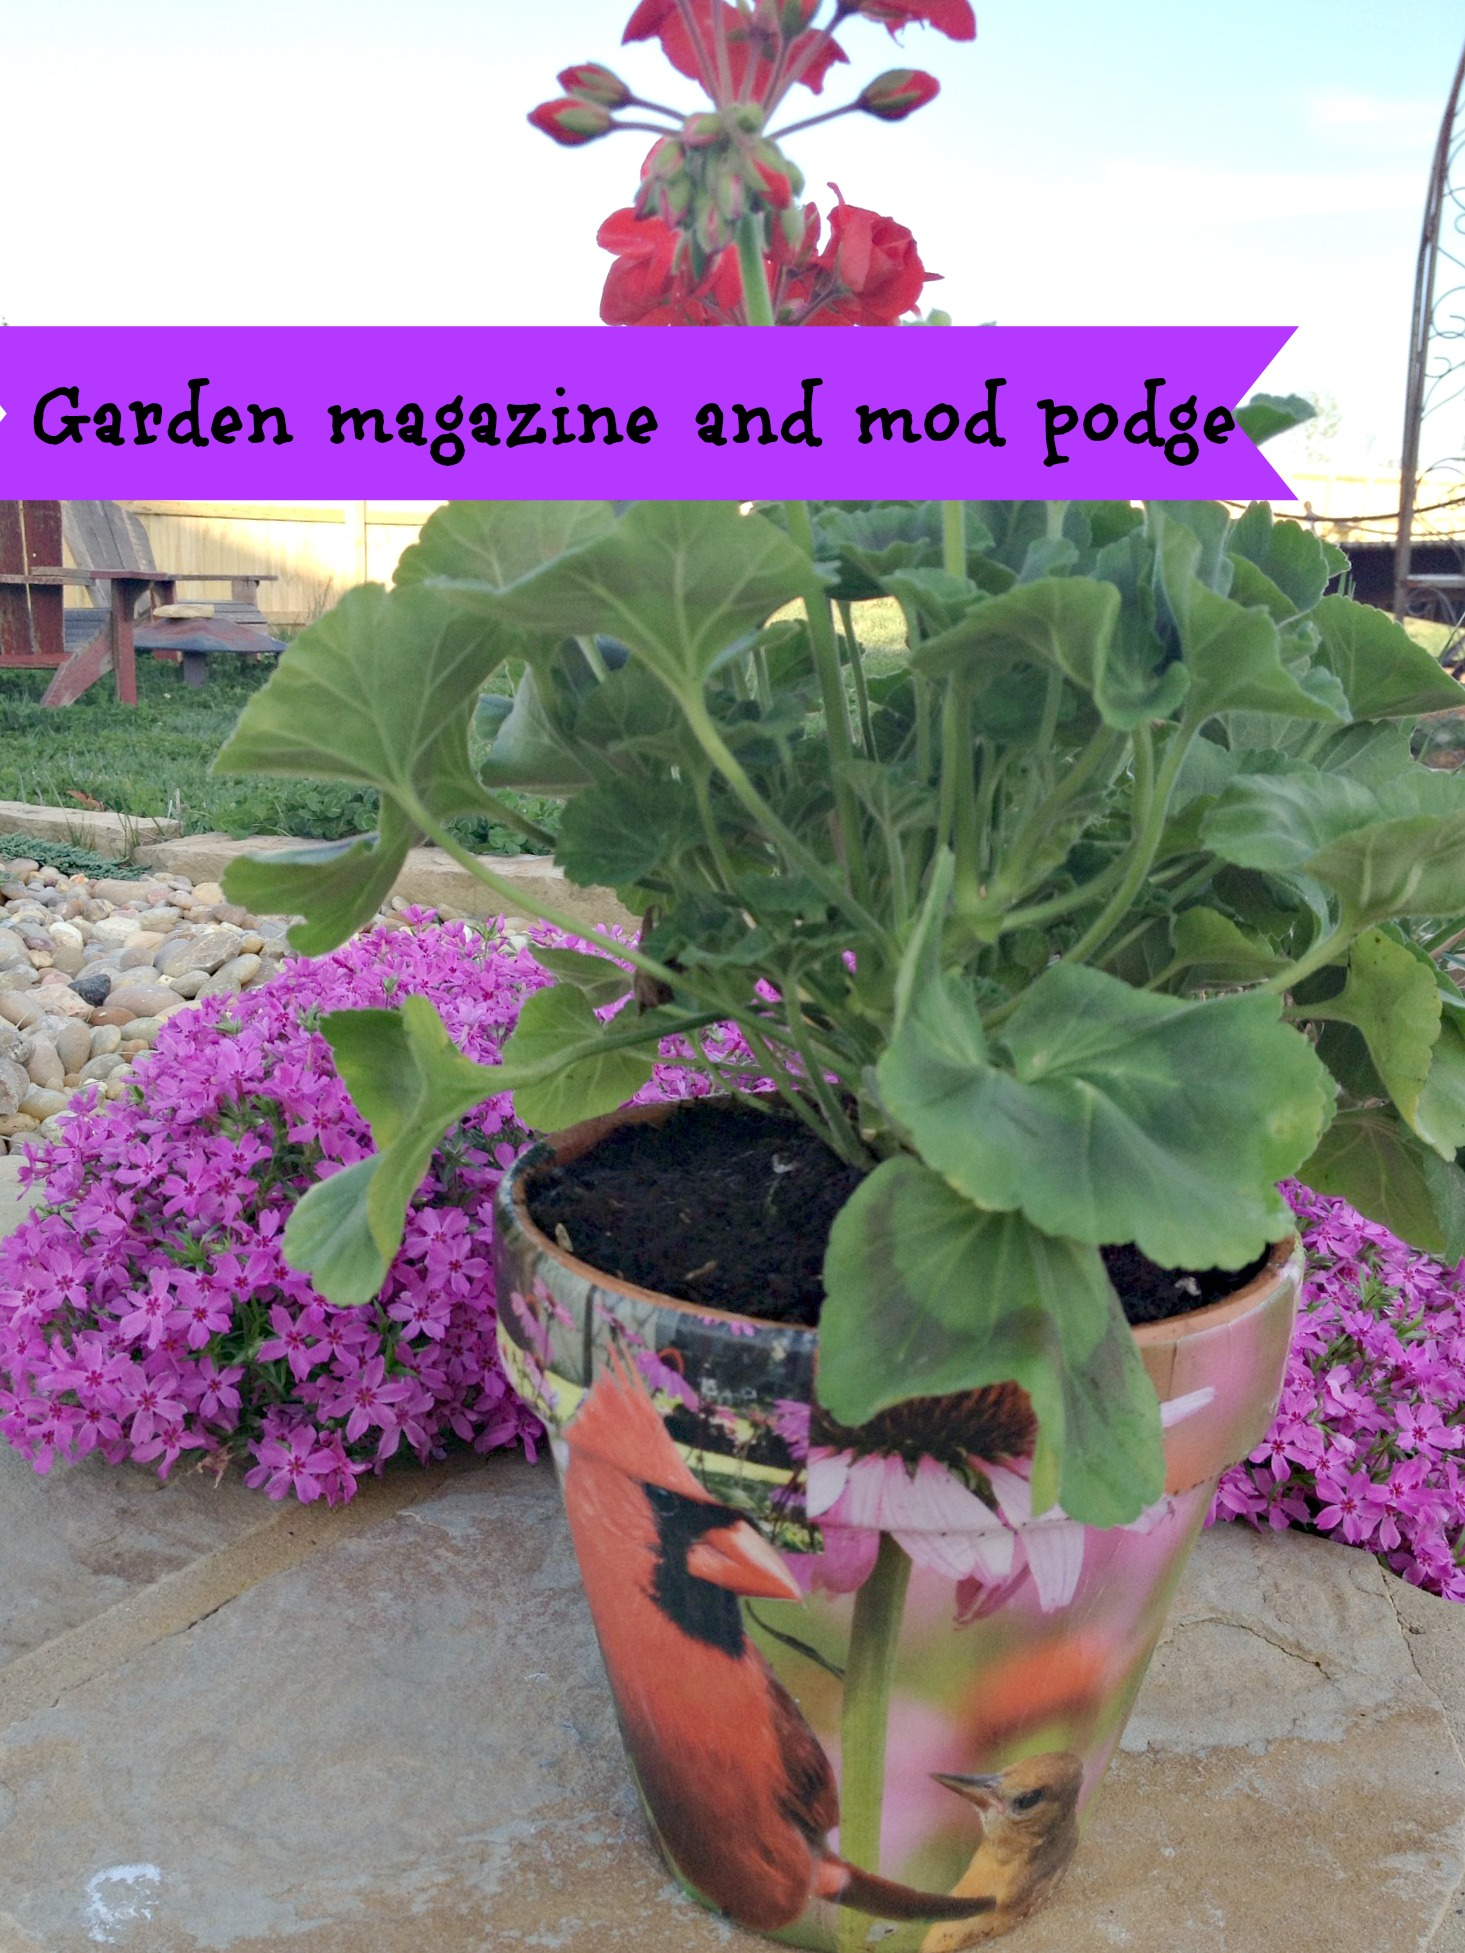 mod podge on terra cotta pots with a garden magazine clippings